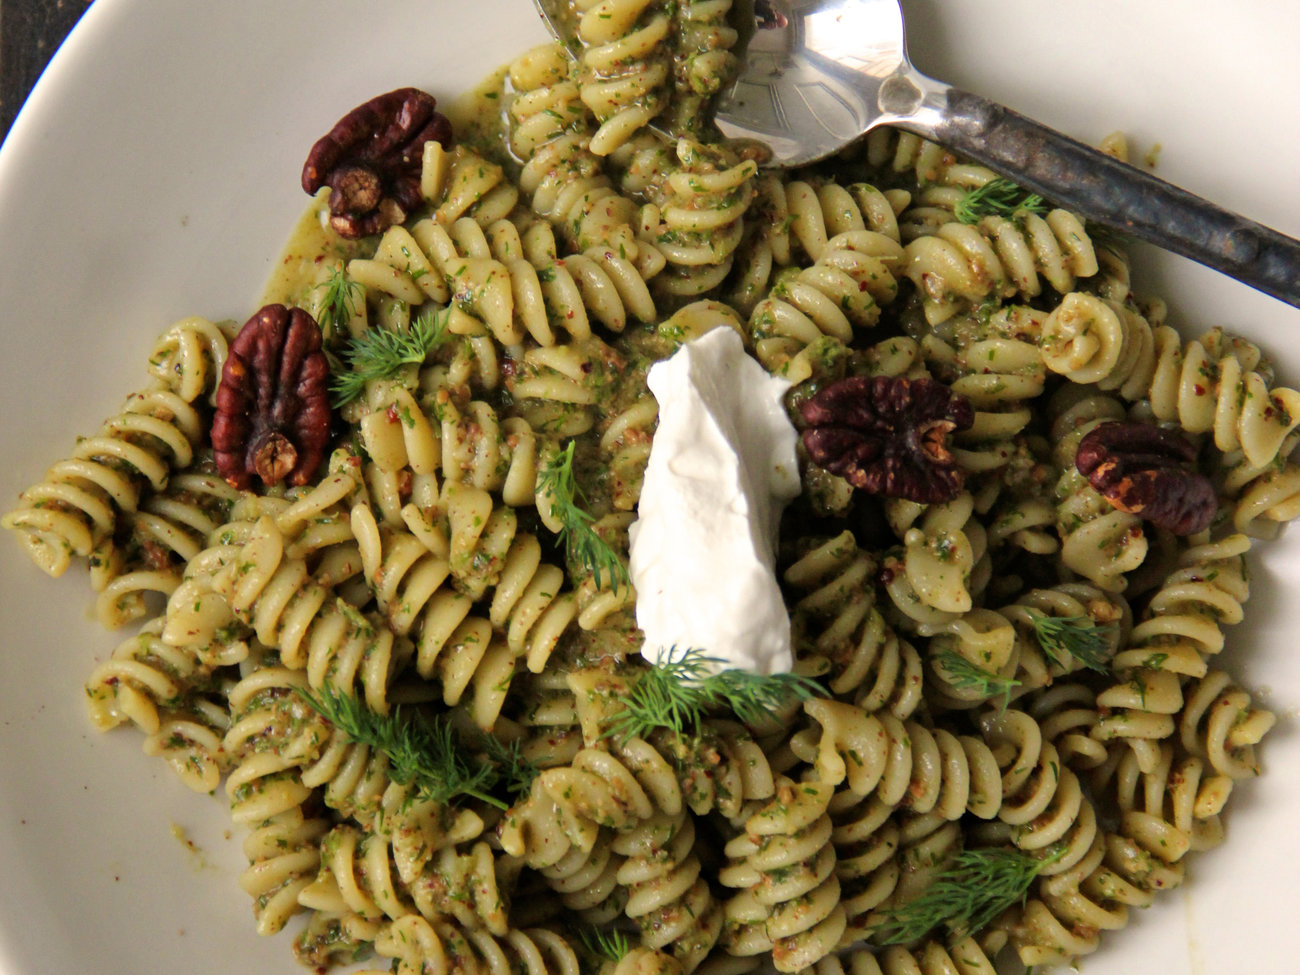 HD-201405-r-dill-pecan-pesto-with-pasta-spirals-and-sour-cream.jpg